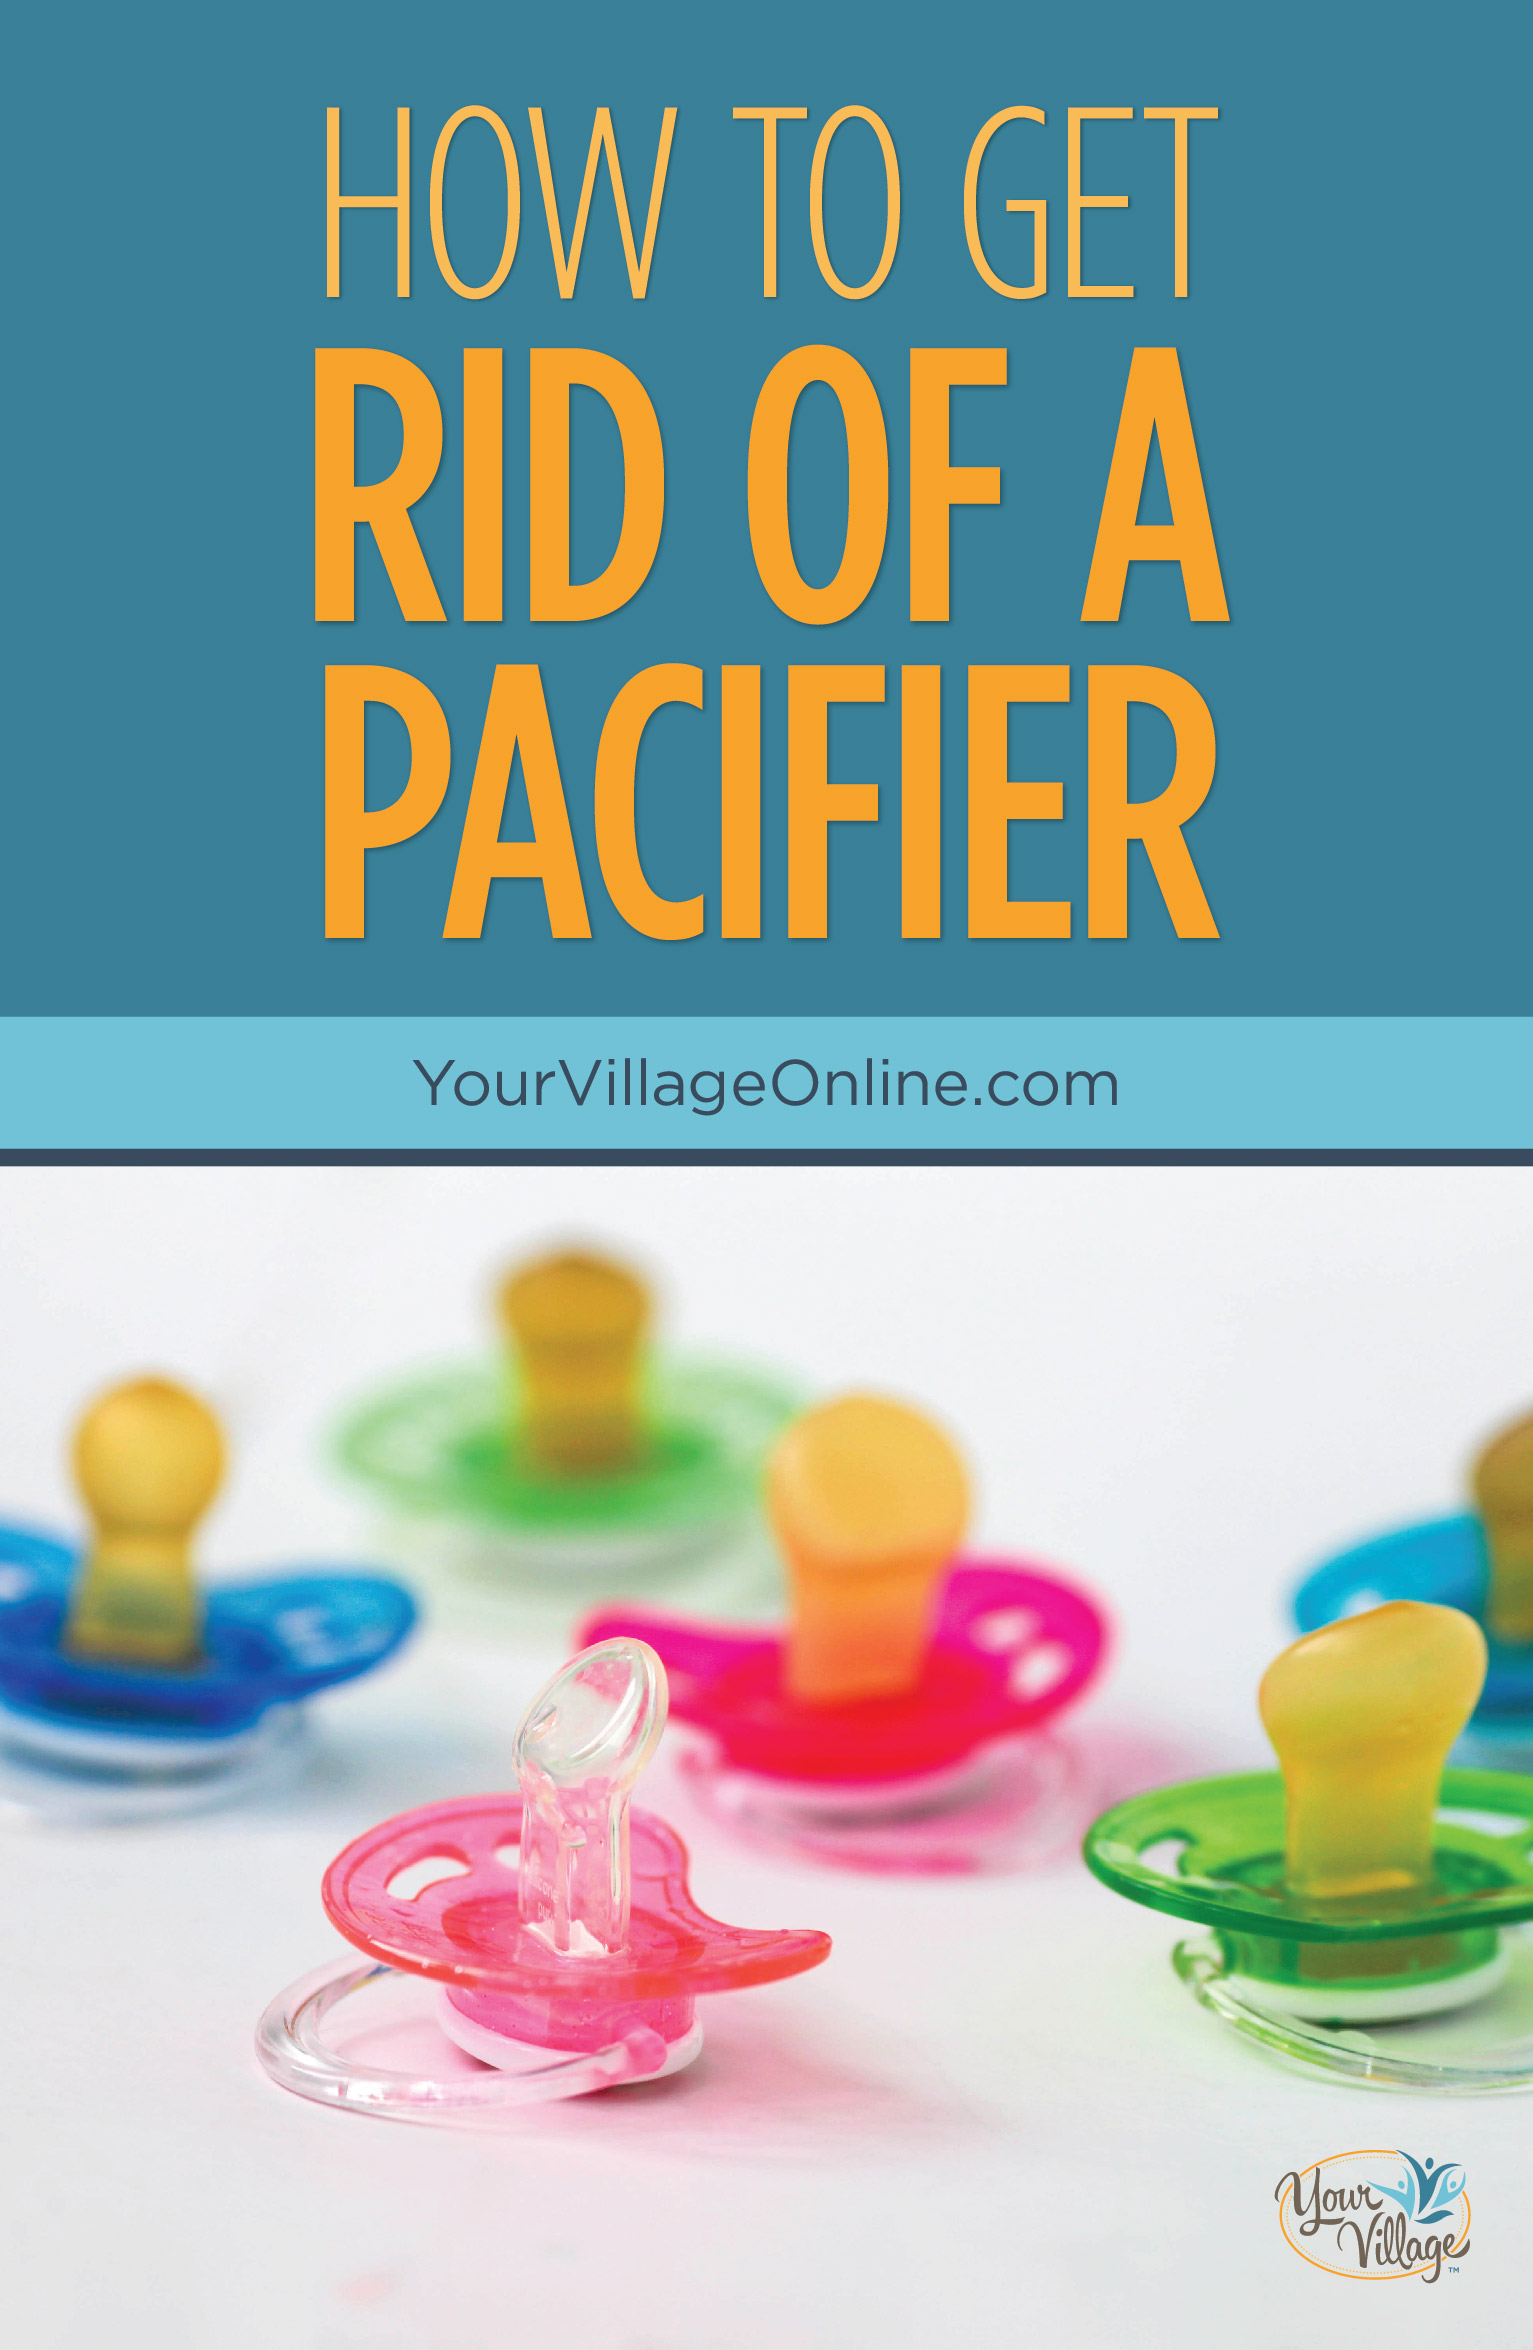 How to Get Rid of a Pacifier from a 3 year old